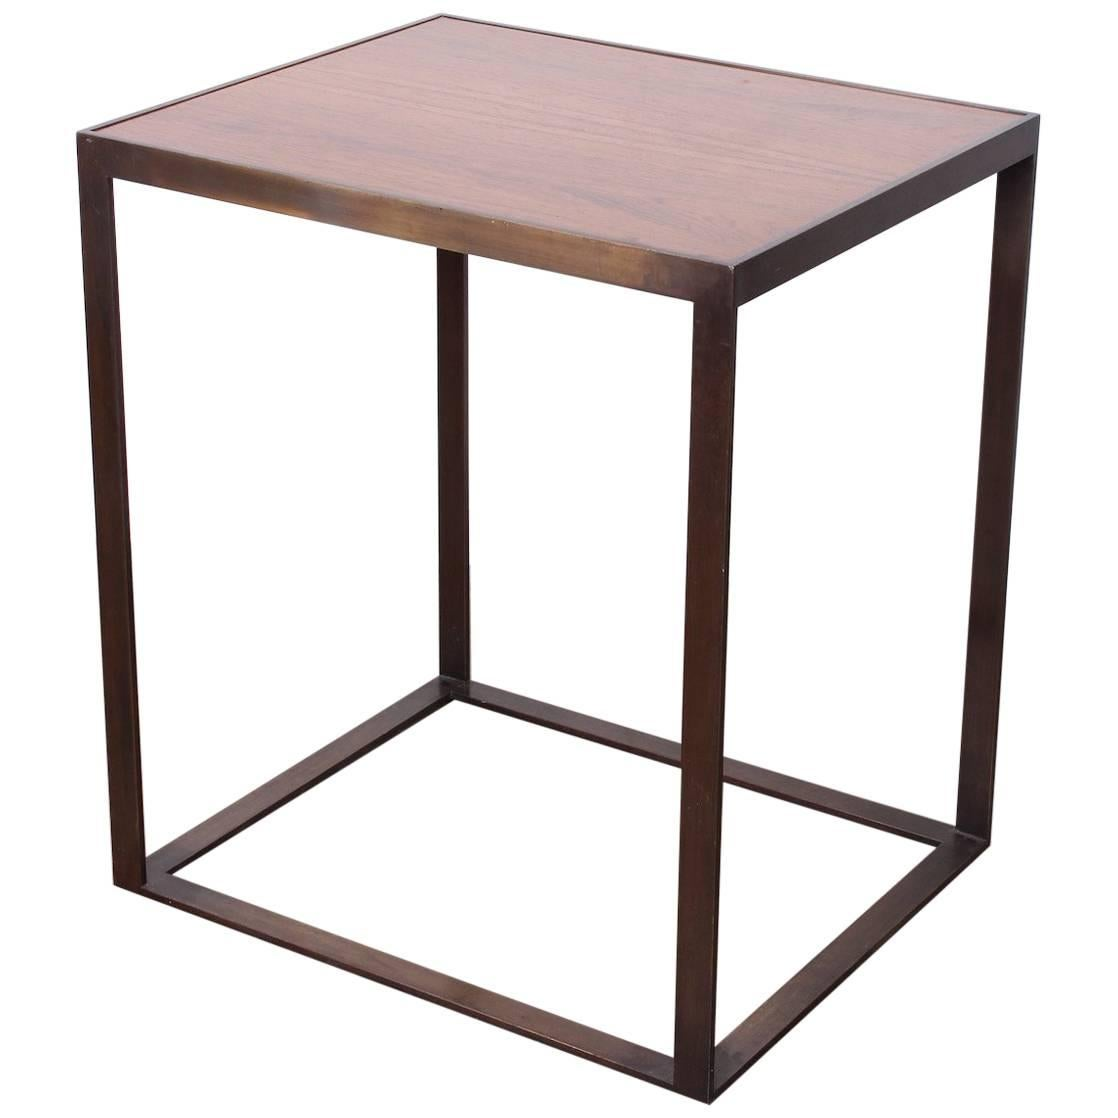 Bronze and Rosewood Pedestal/Table by Dunbar